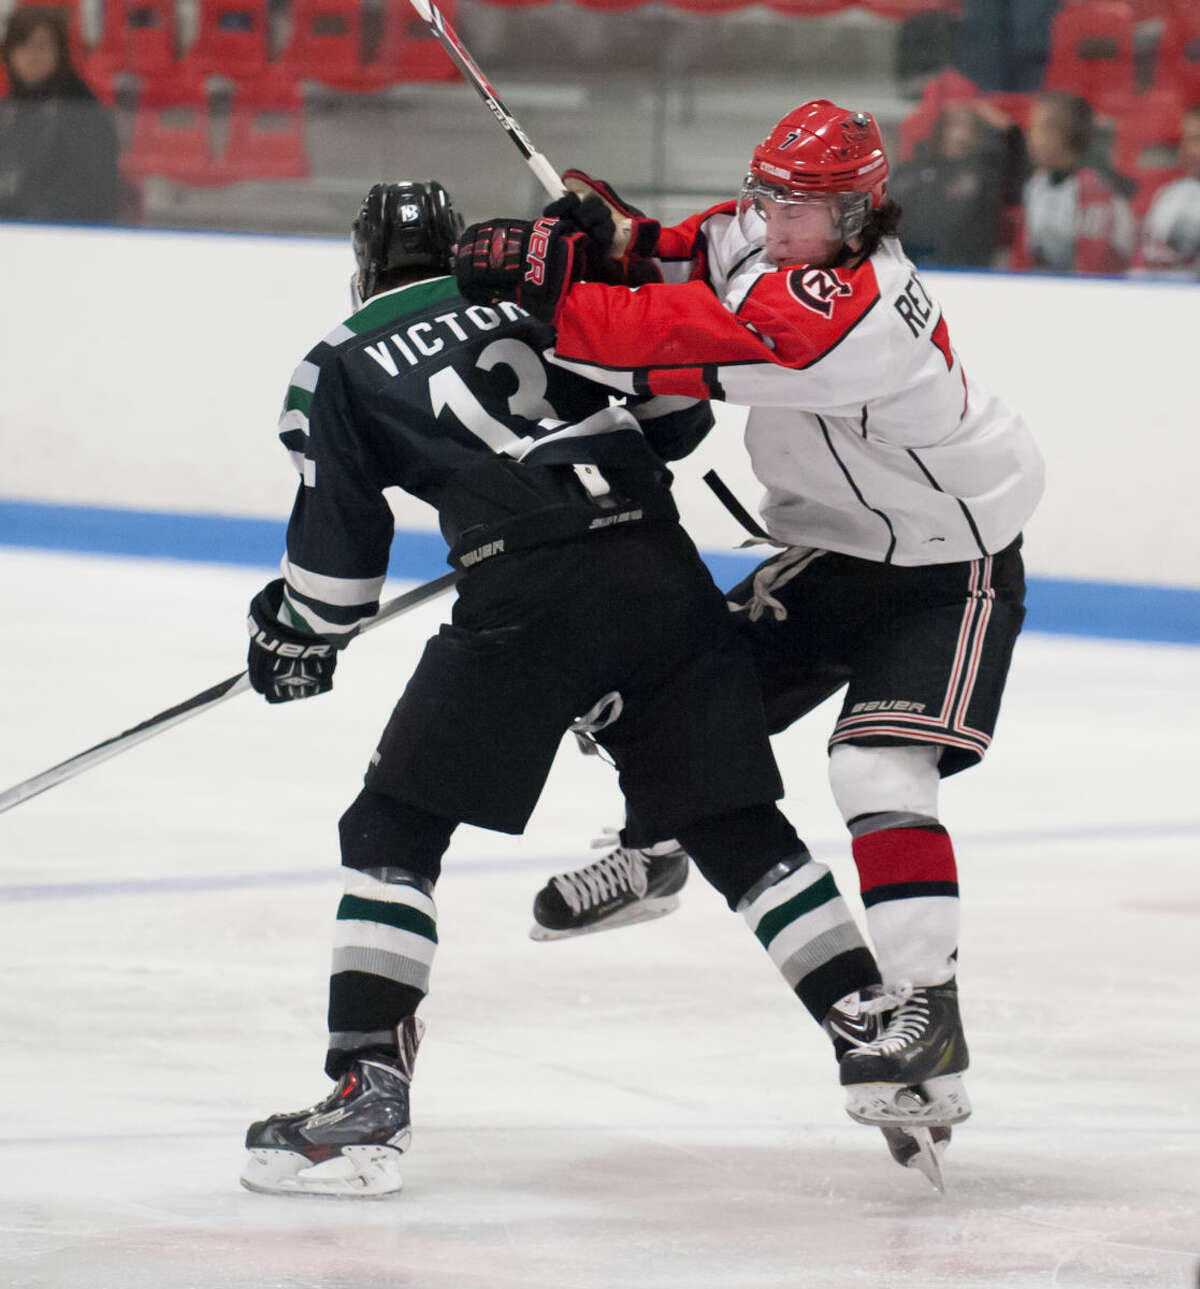 JOSH GIBNEY PHOTO Connecticut's Josh Victor, left, and Northern's Nolan Redler collide during the second period of Wednesday's EHL championship final series game at Cyclones Arena in Hudson, N.H..